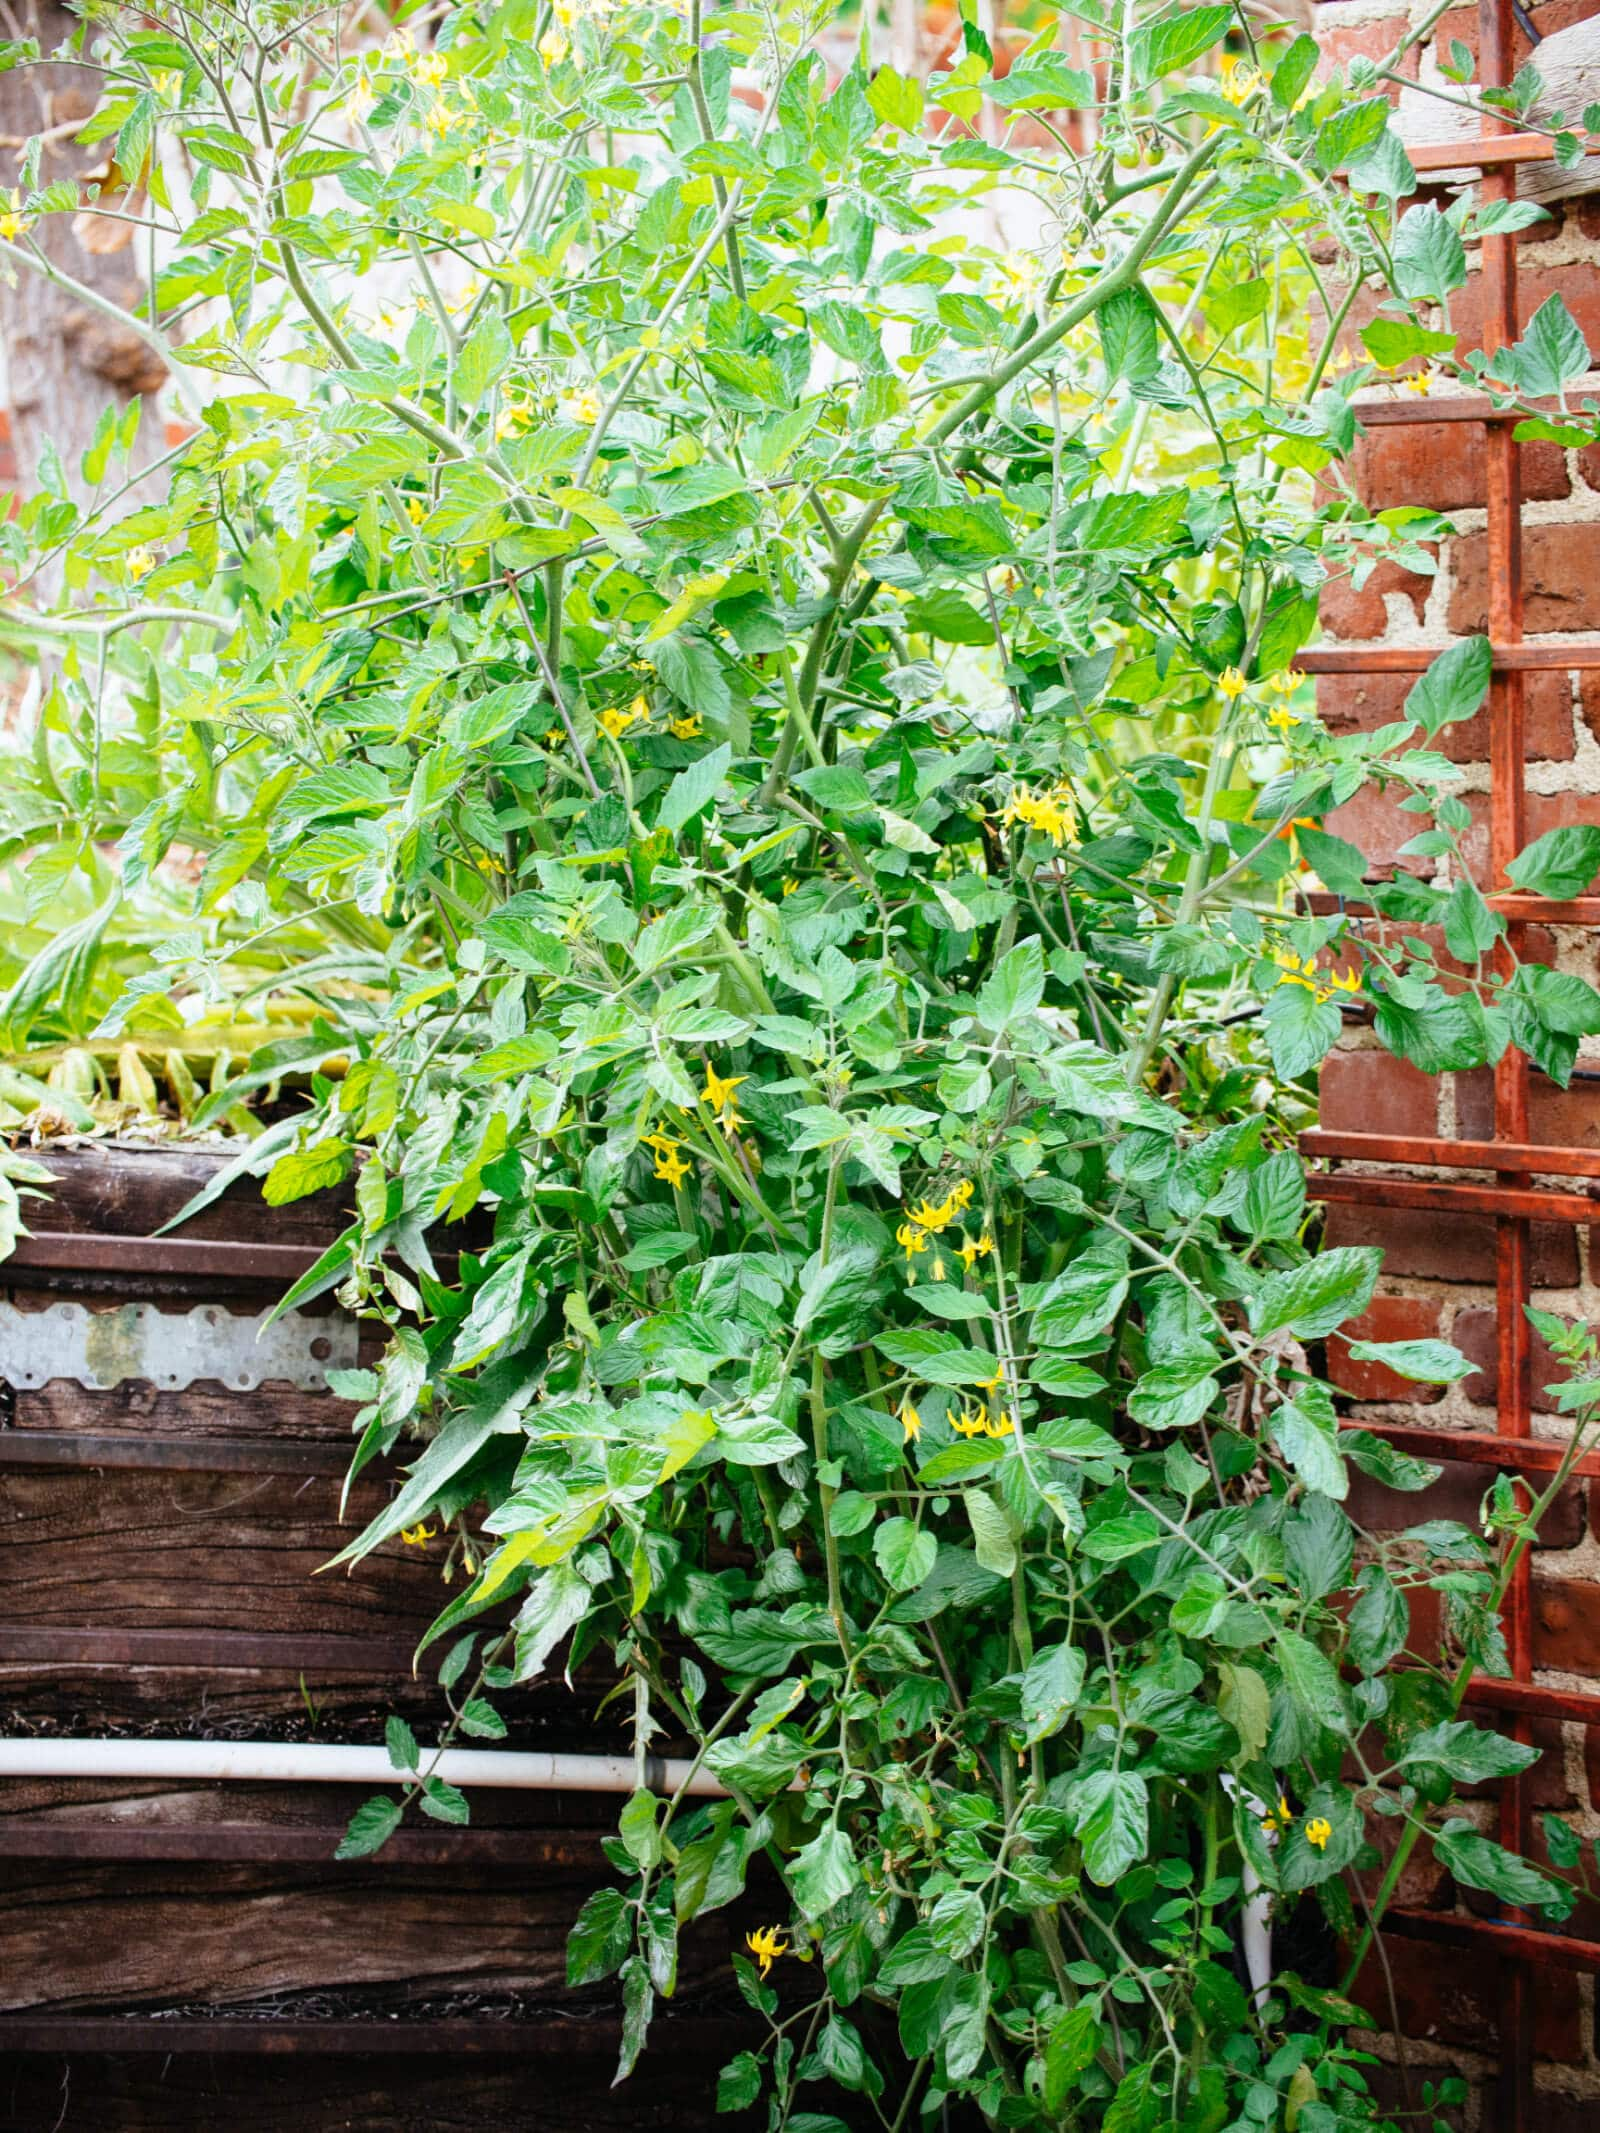 Choose a location with full sun for your tomato plants